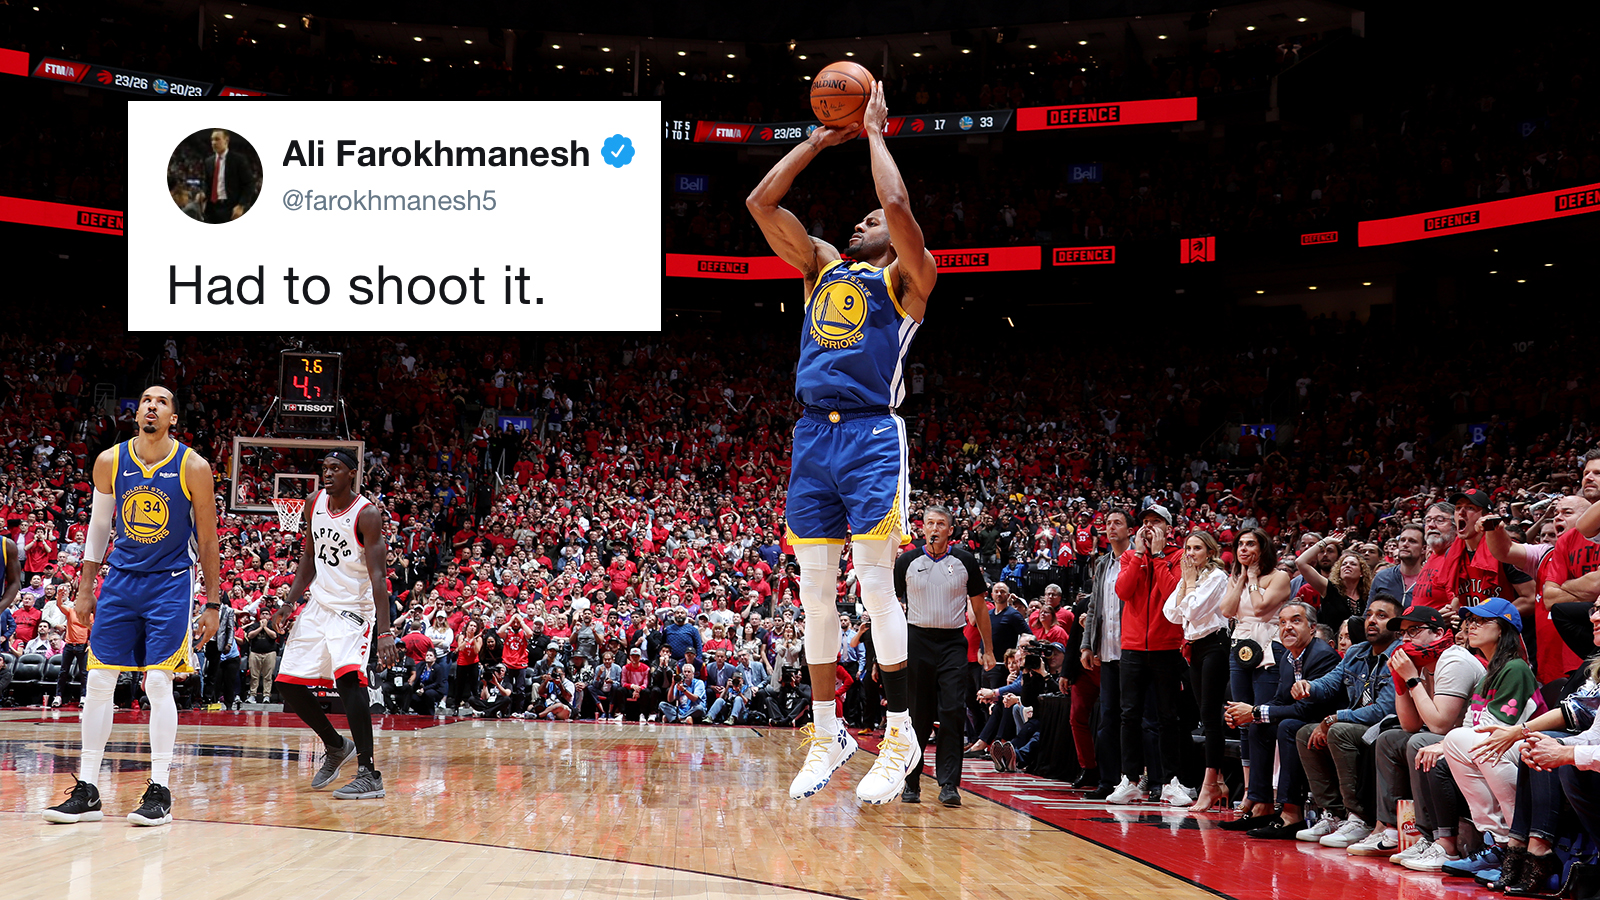 Andre Iguodala shot vs Raptors reminiscent of Ali Farokhmanesh